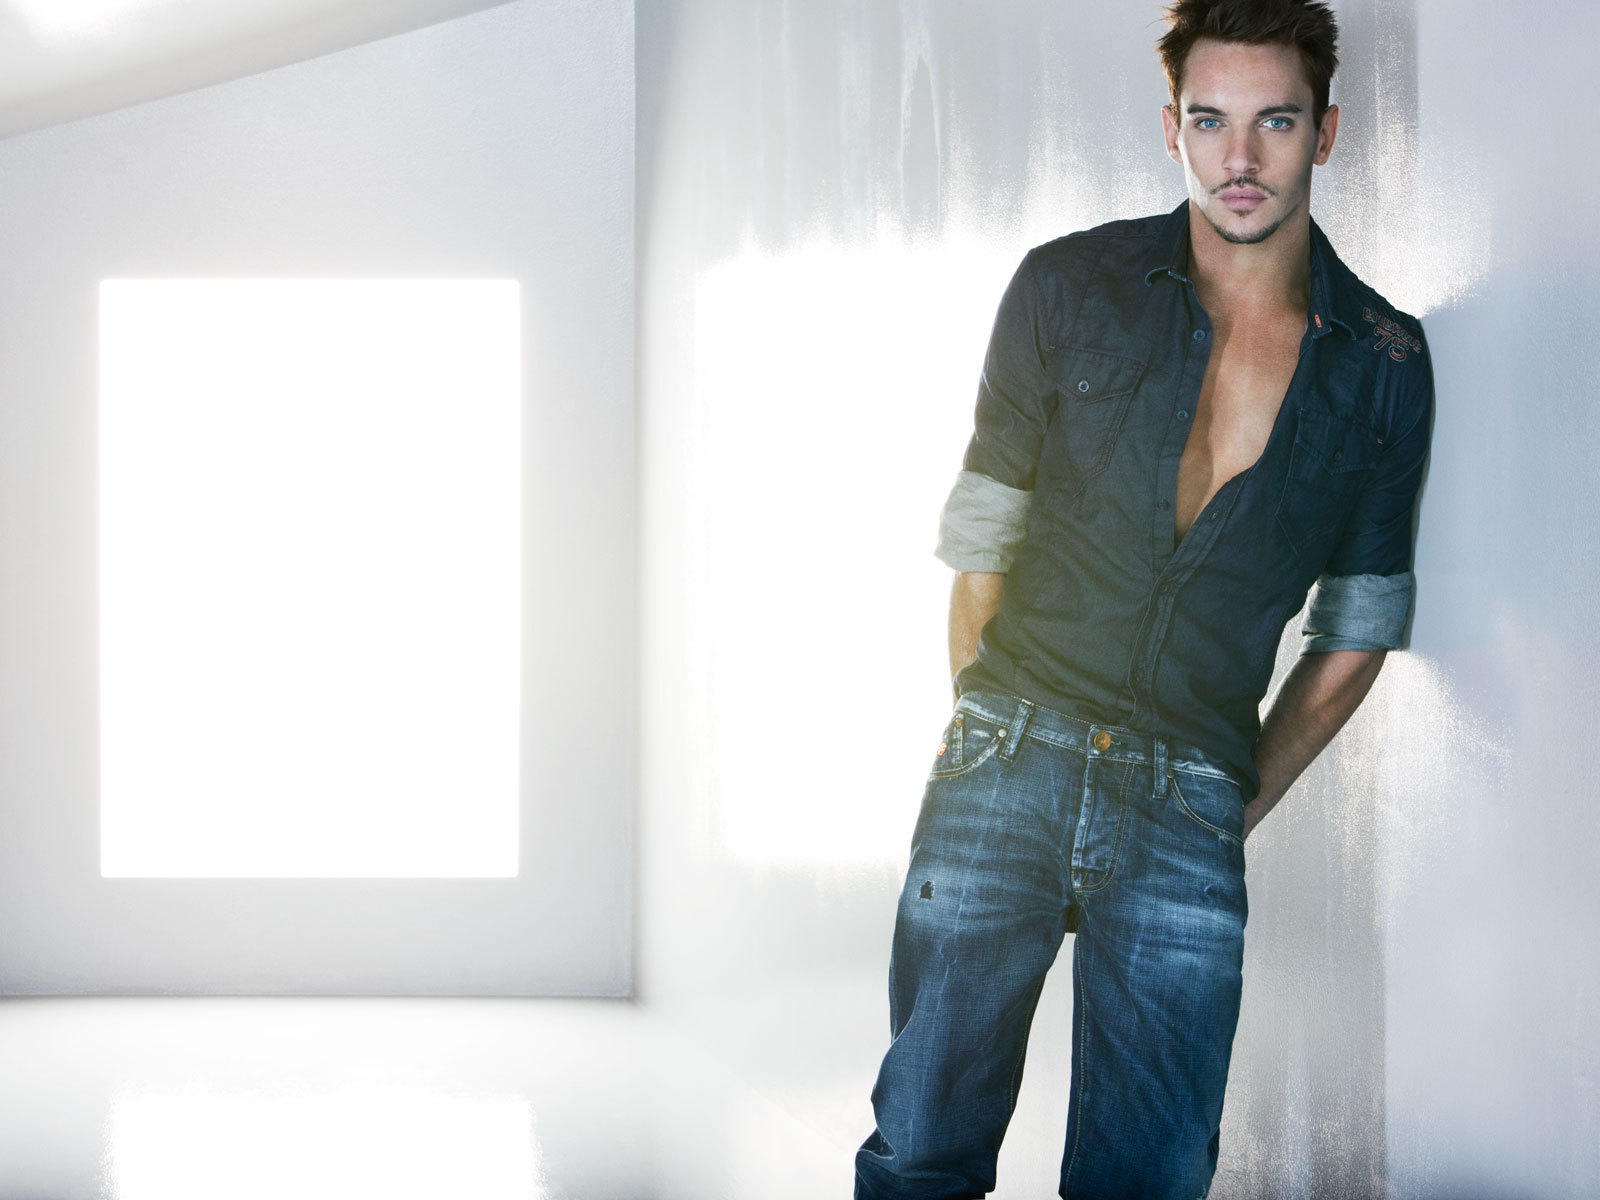 jonathan rhys meyers fansite